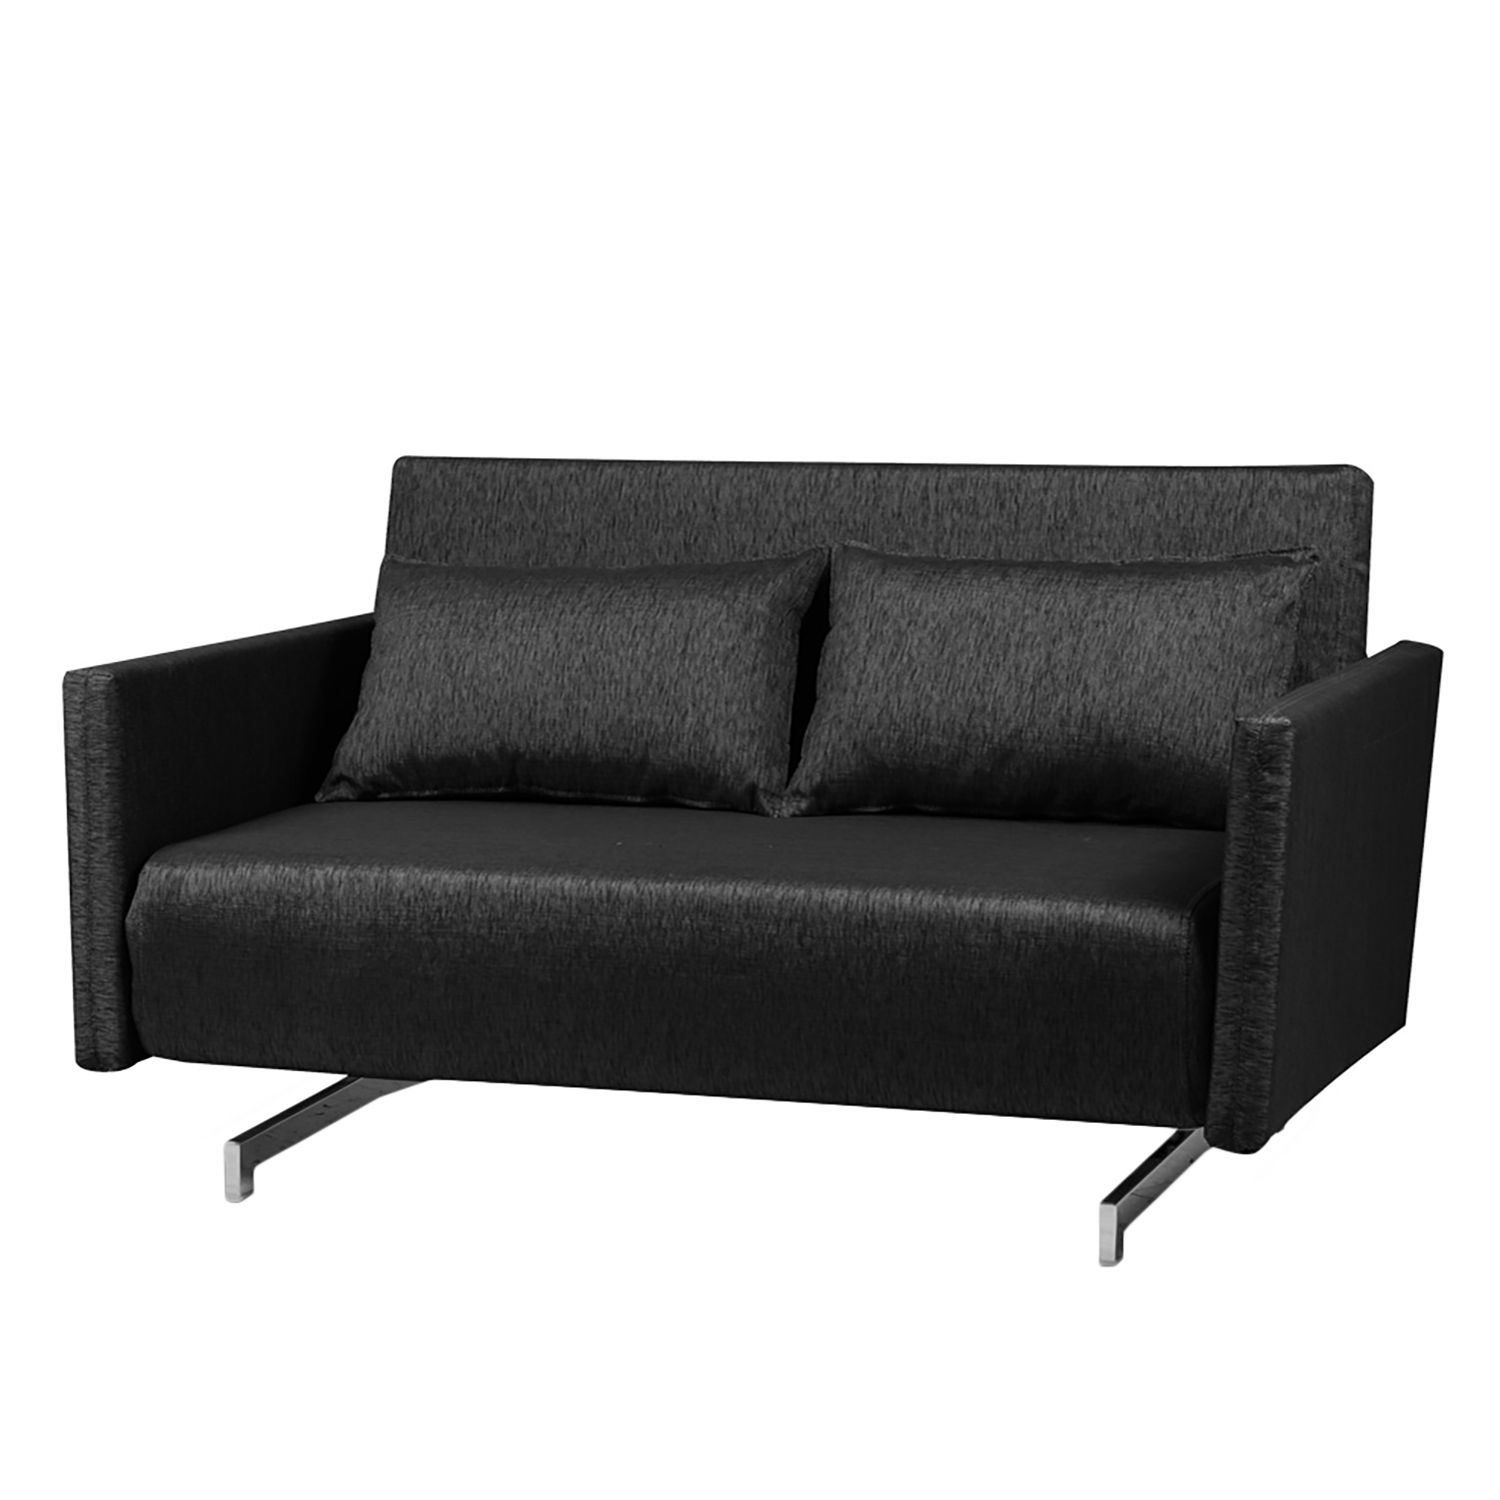 schlafsofa dendera b webstoff stoff livia anthrazit fredriks g nstig online kaufen. Black Bedroom Furniture Sets. Home Design Ideas